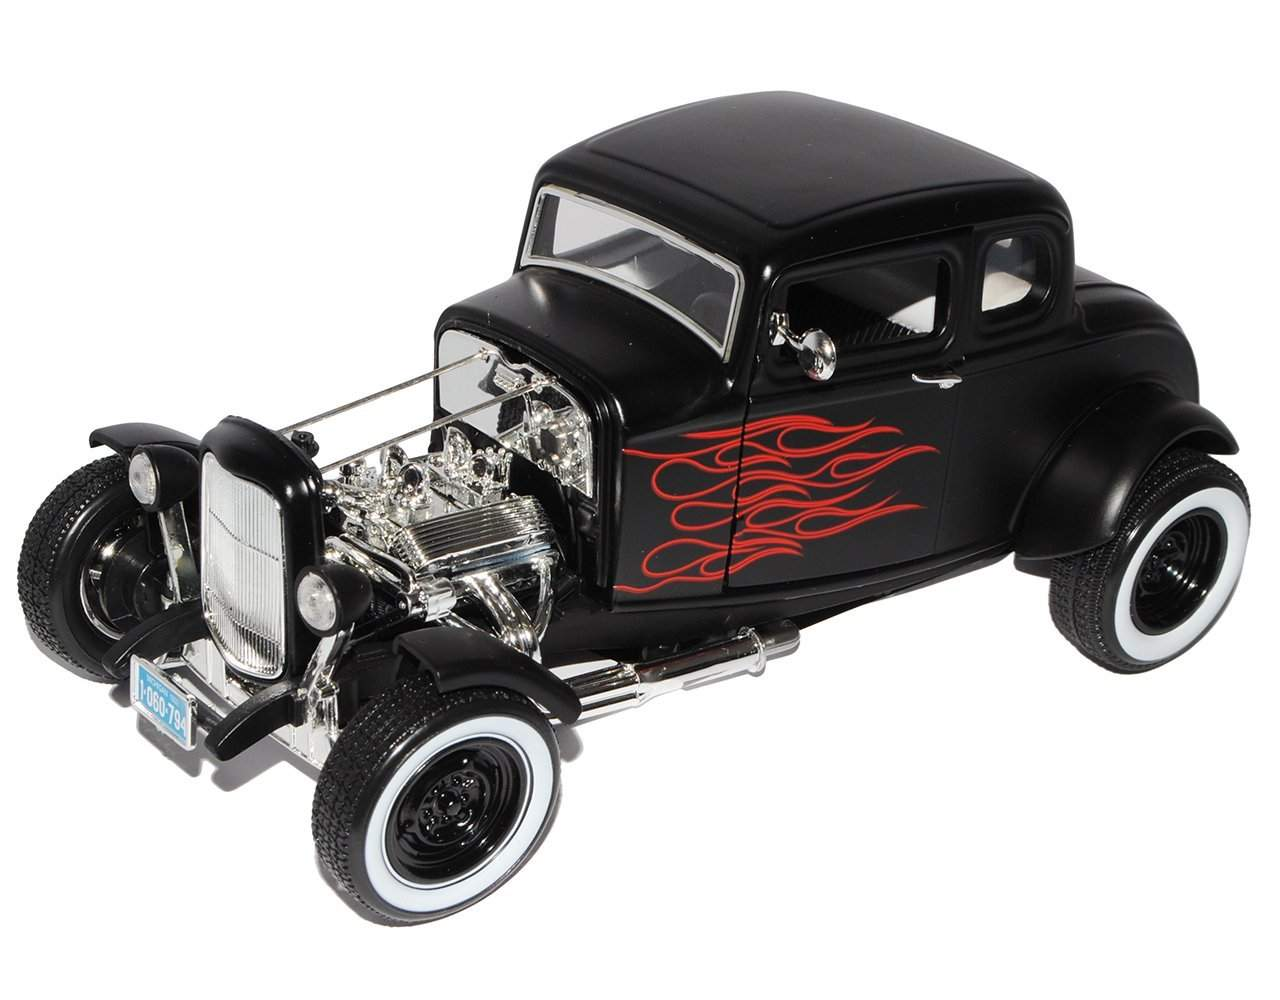 1932 Ford Coupe Hot Rod Black w/ Red Flames (1:18 Scale)